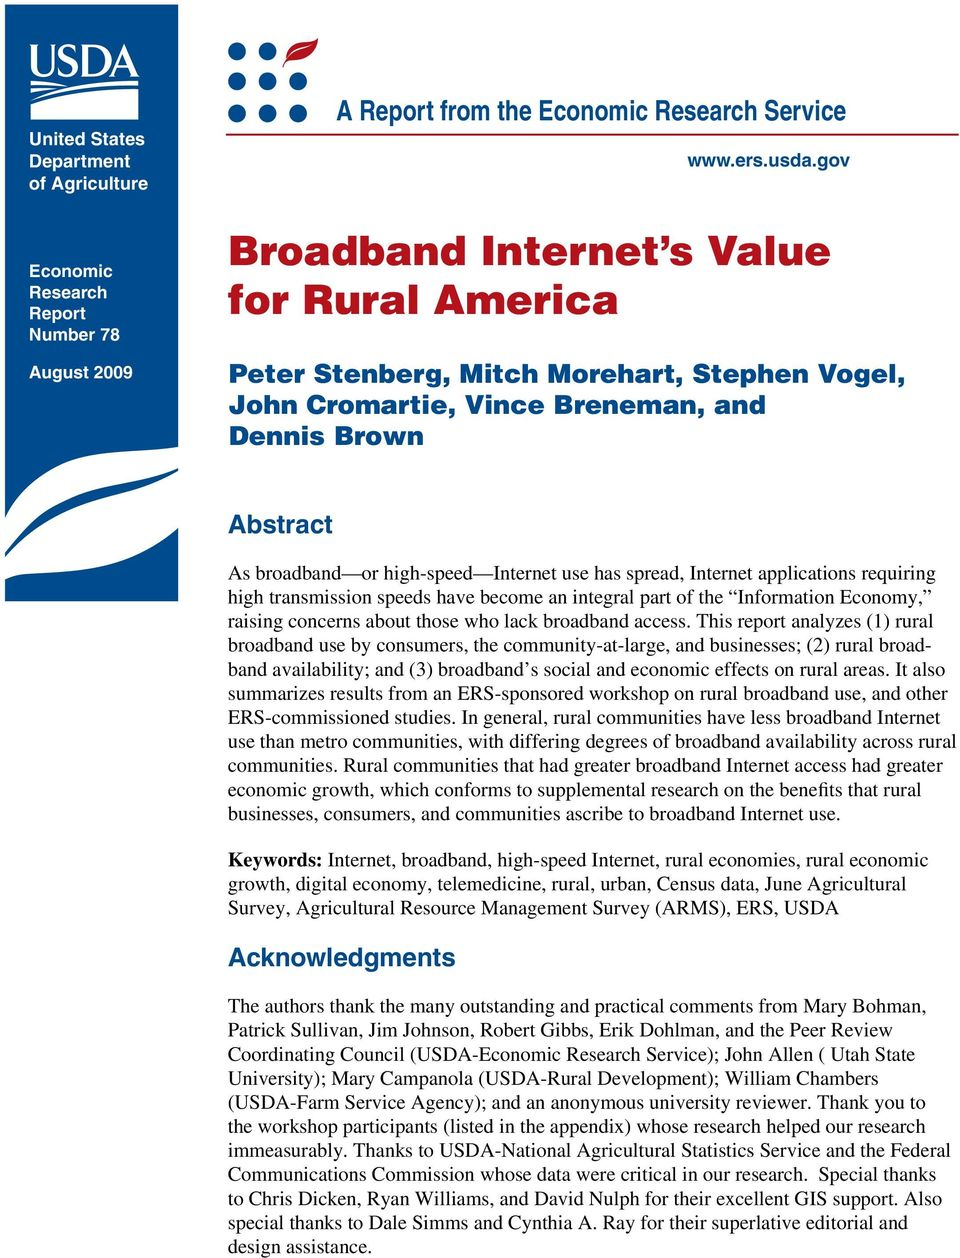 spread, Internet applications requiring high transmission speeds have become an integral part of the Information Economy, raising concerns about those who lack broadband access.